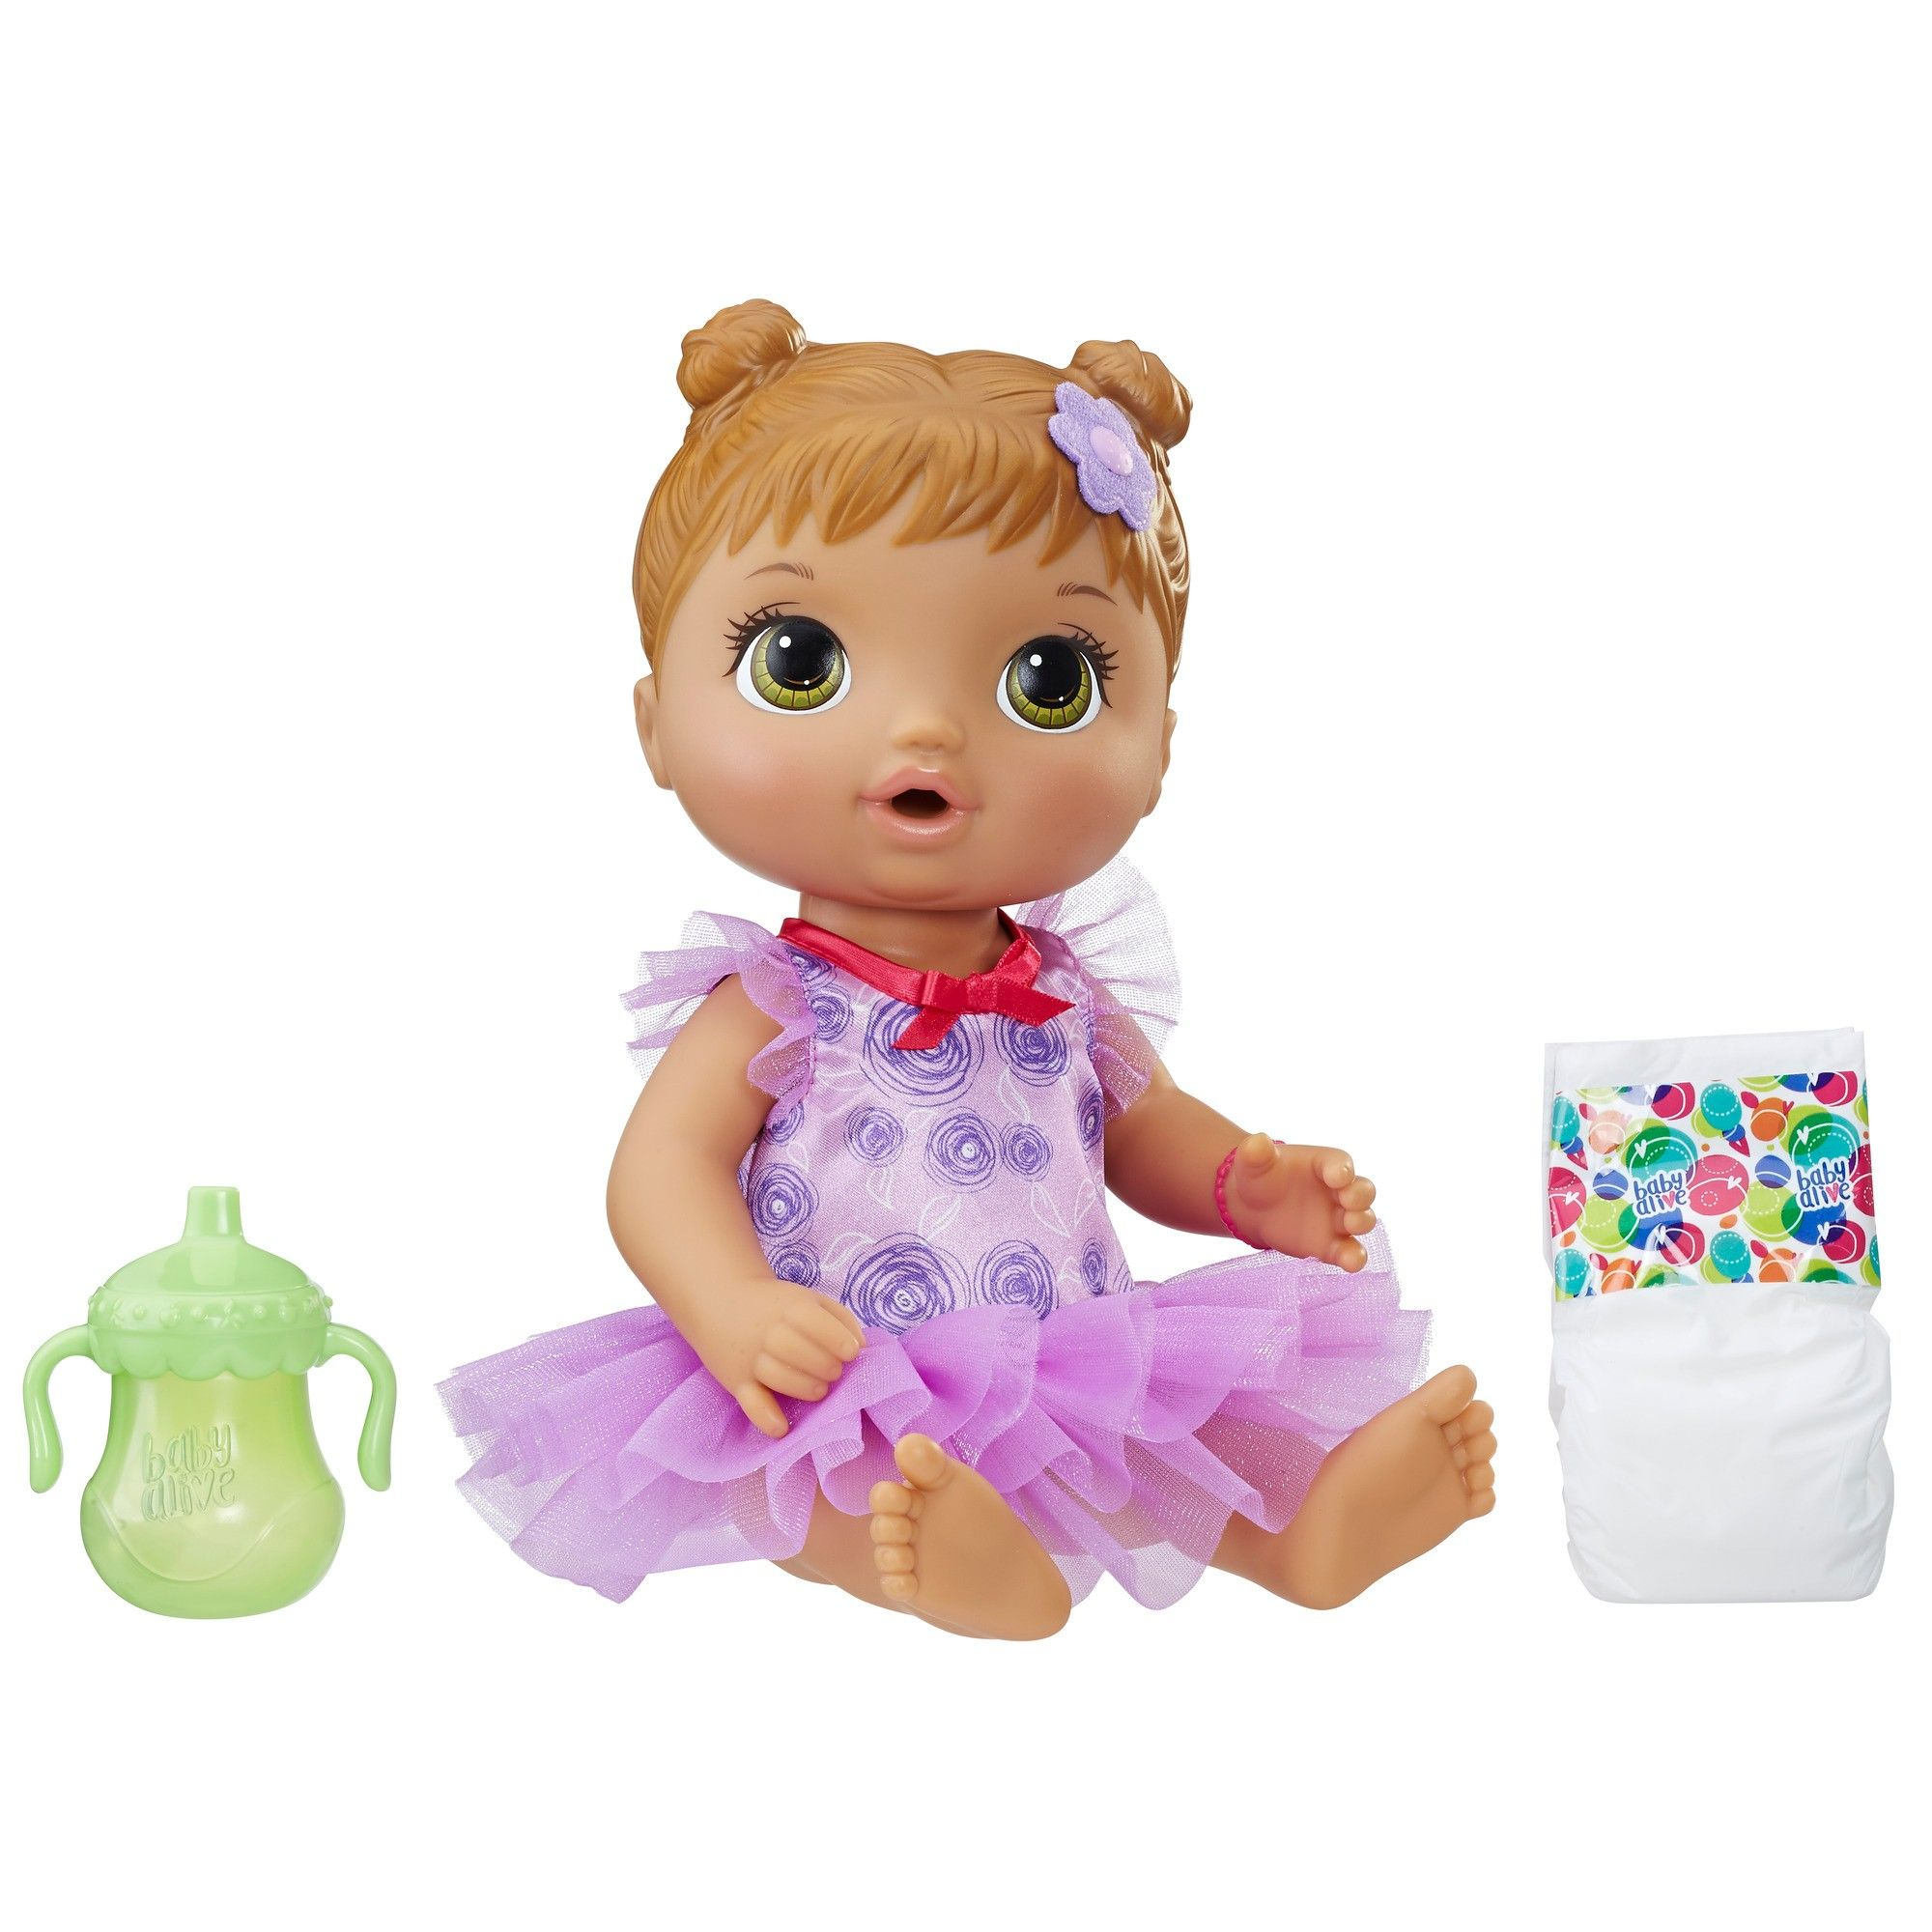 Baby Alive Dance Class Baby Brown Sculpted Hair Baby Alive Baby Alive Dolls Baby Dolls